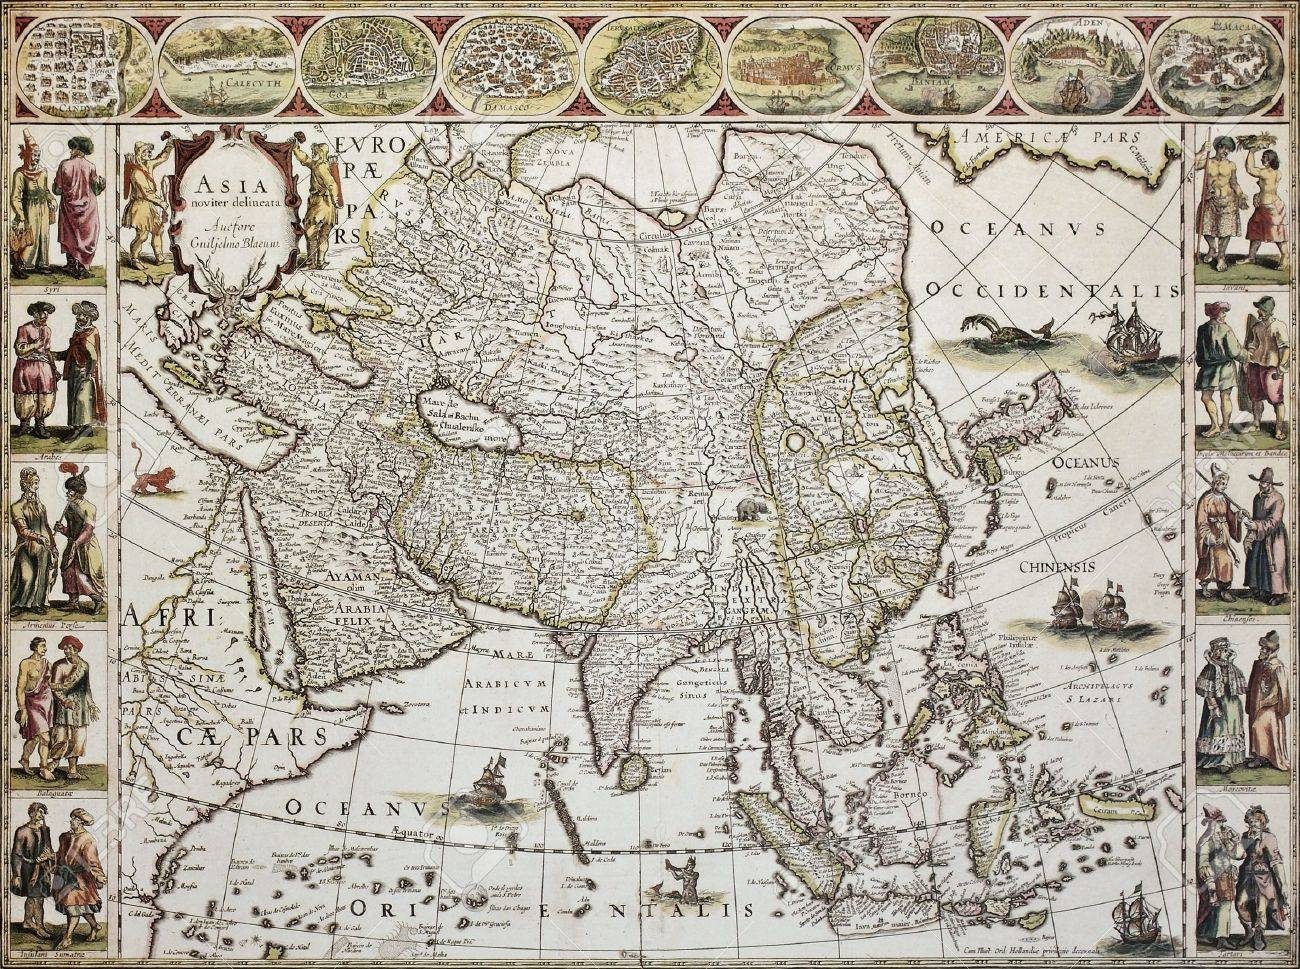 Asia Old Map Created By Willem Bleau Published In Amsterdam - Amsterdam old map